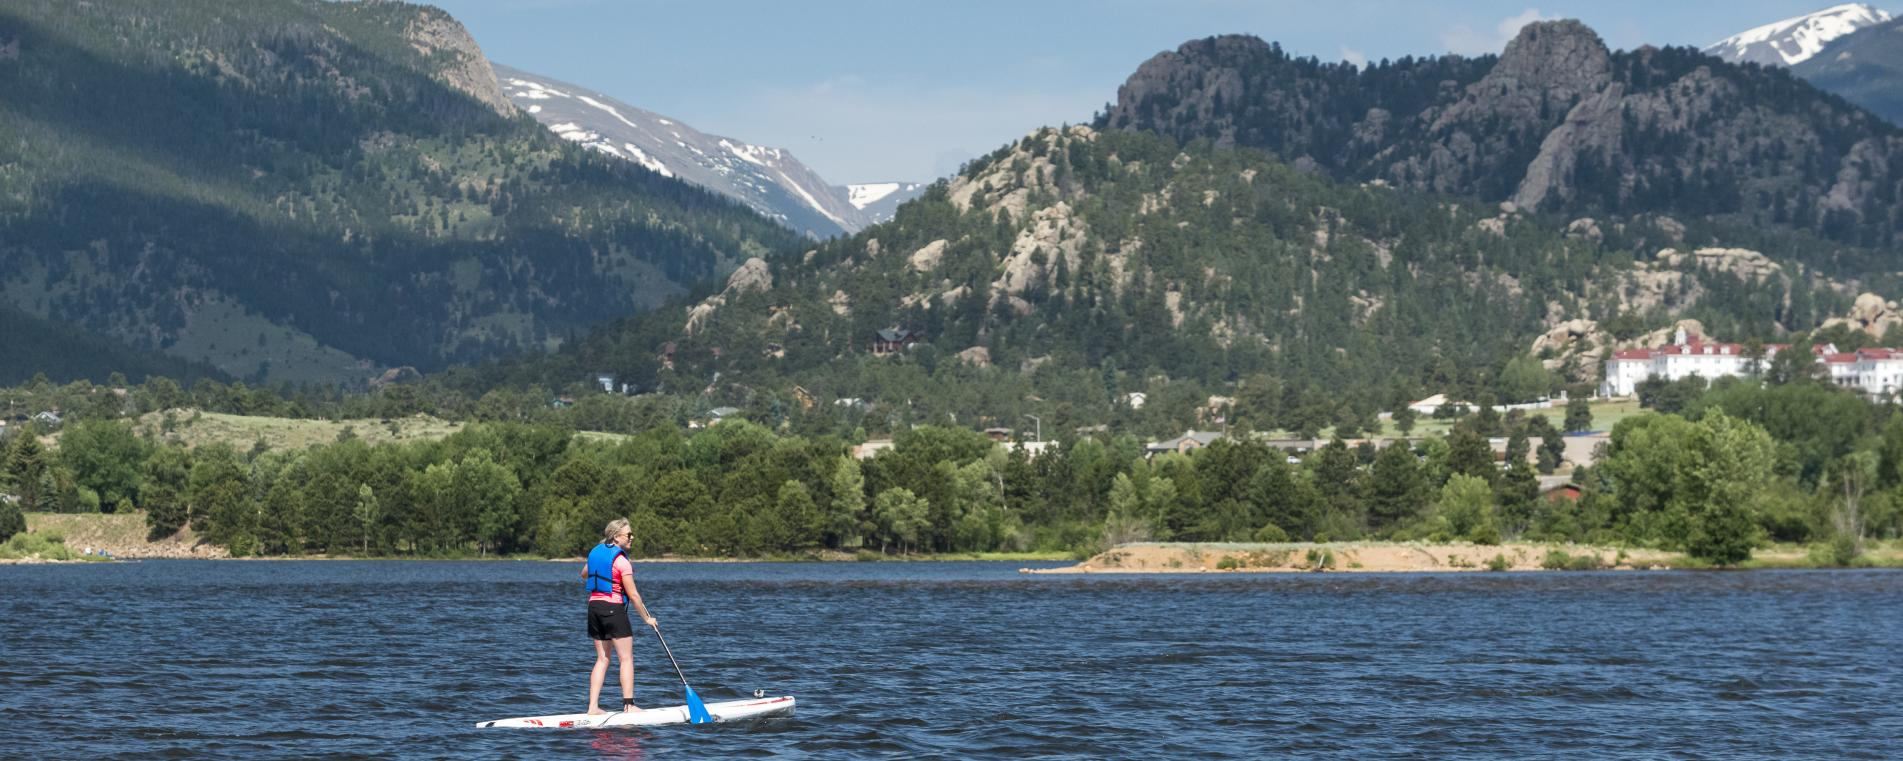 SUP on Lake Estes